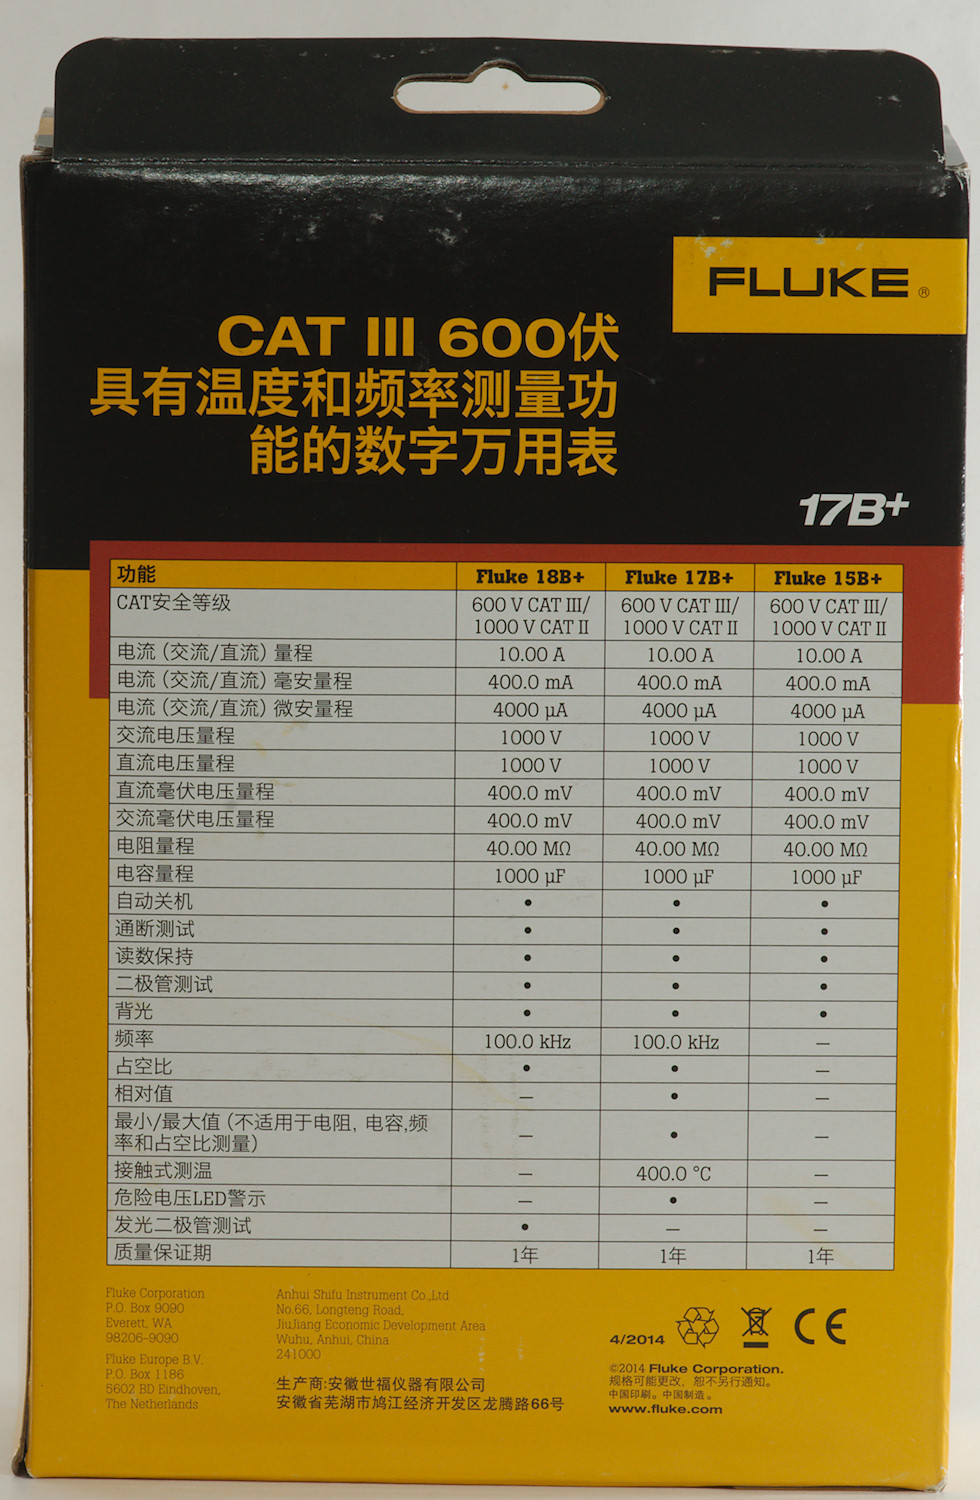 Fluke Tl71 Premium Test Lead Set Right Angle 2015 Amazon Top Extech Cb20 Circuit Breaker Finder Receptacle Tester Ebay The Meter Arrived In A Yellow Box With Chinese Writing I Bought It From German Seller On